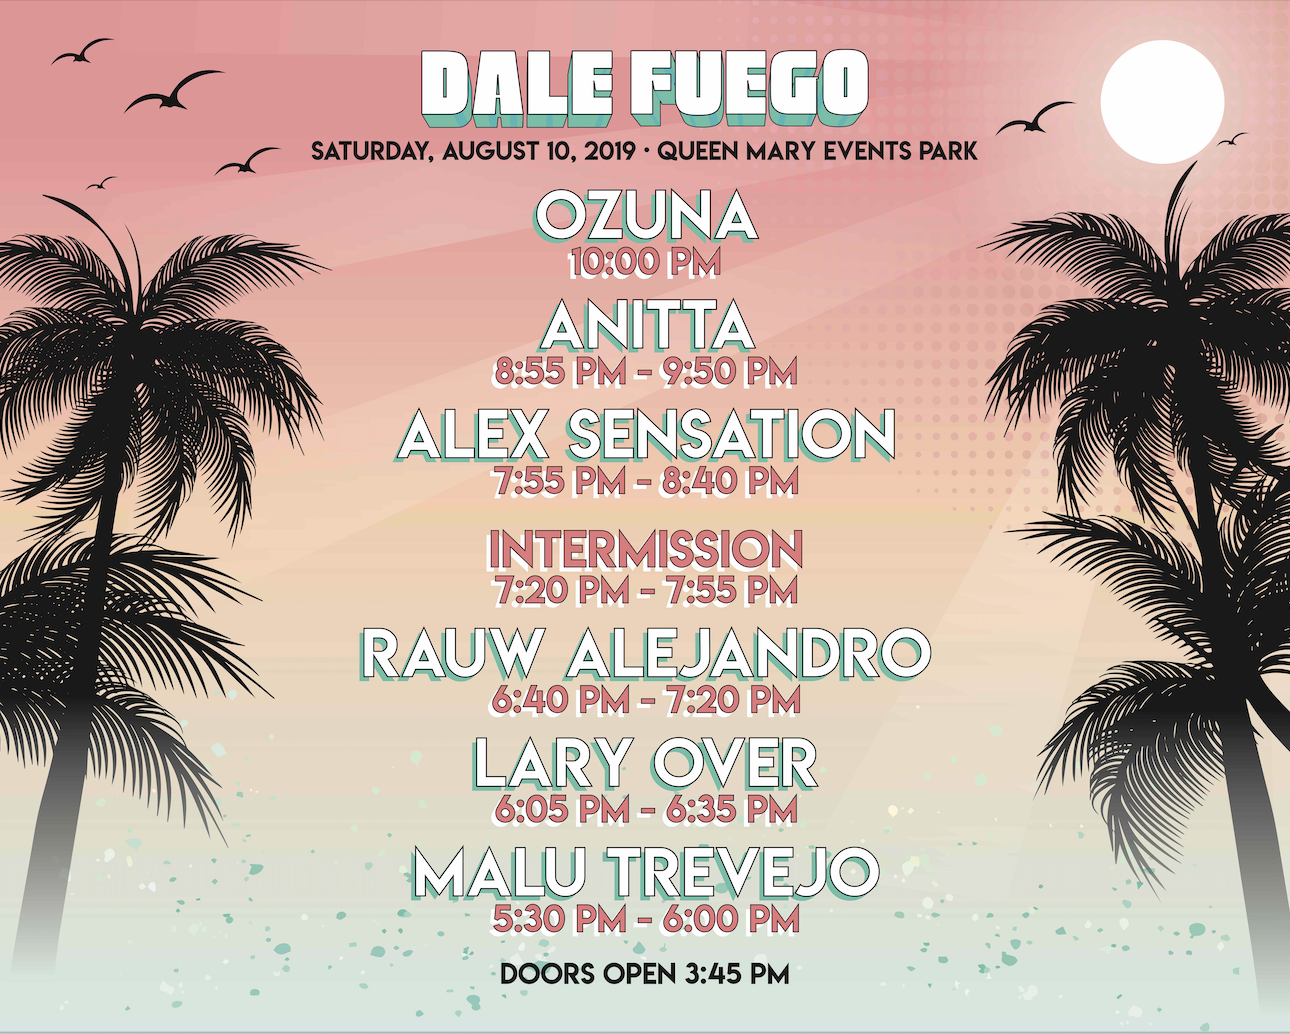 Dale Fuego Set Times